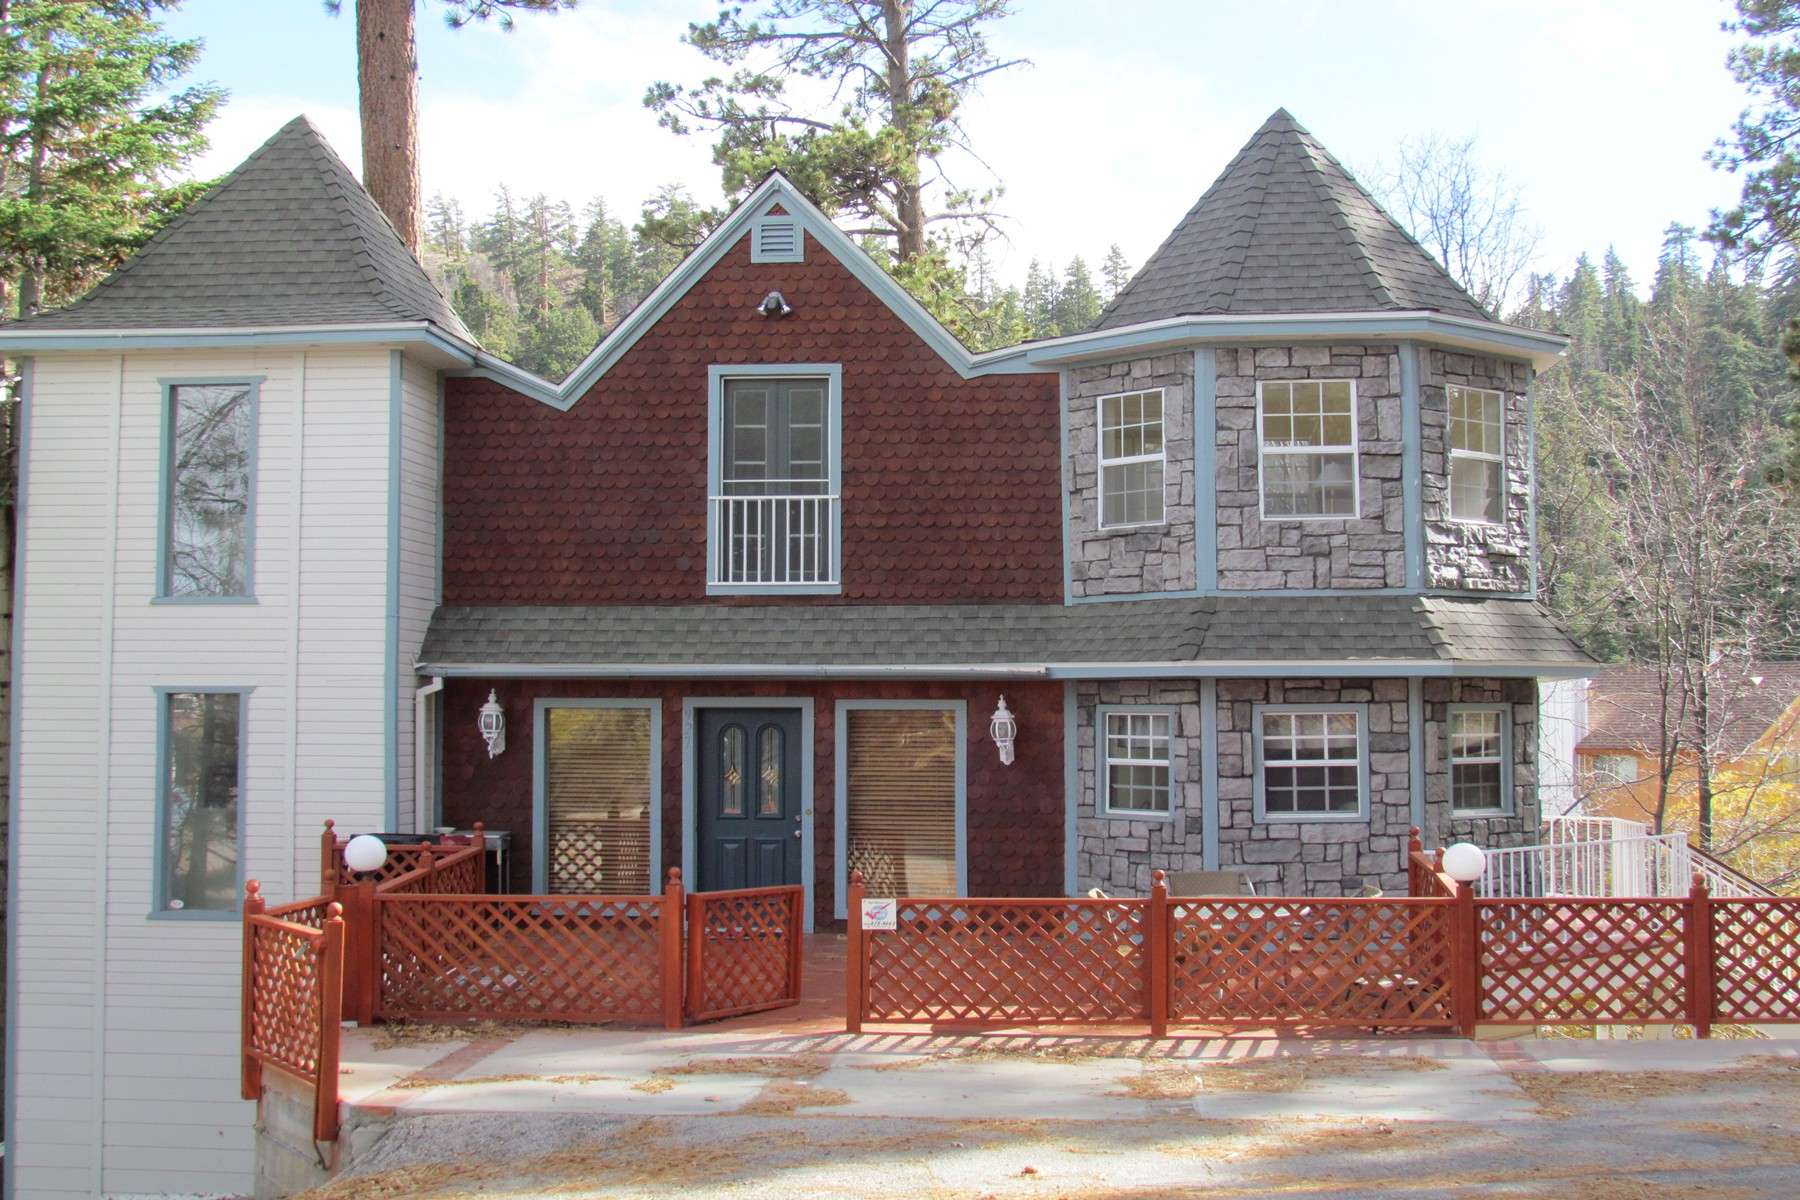 Single Family Home for Sale at 927 Cameron Big Bear Lake, California, 92315 United States